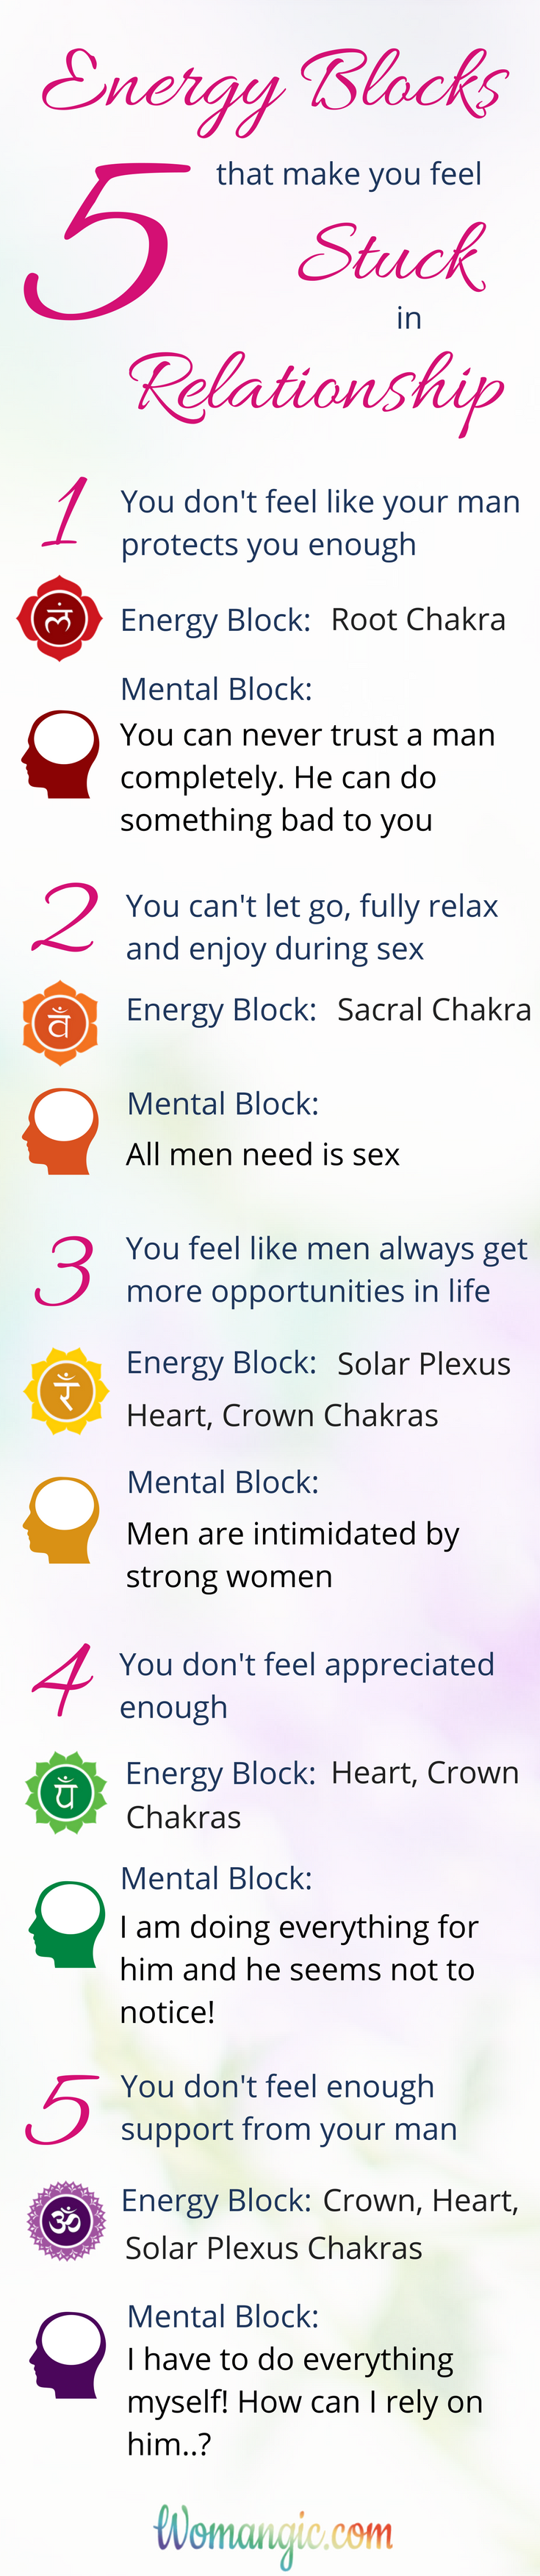 5 Energy Blocks That Make You Feel Stuck In A Relationship Chakra Affirmations Chakra Cleanse Chakra Meanings